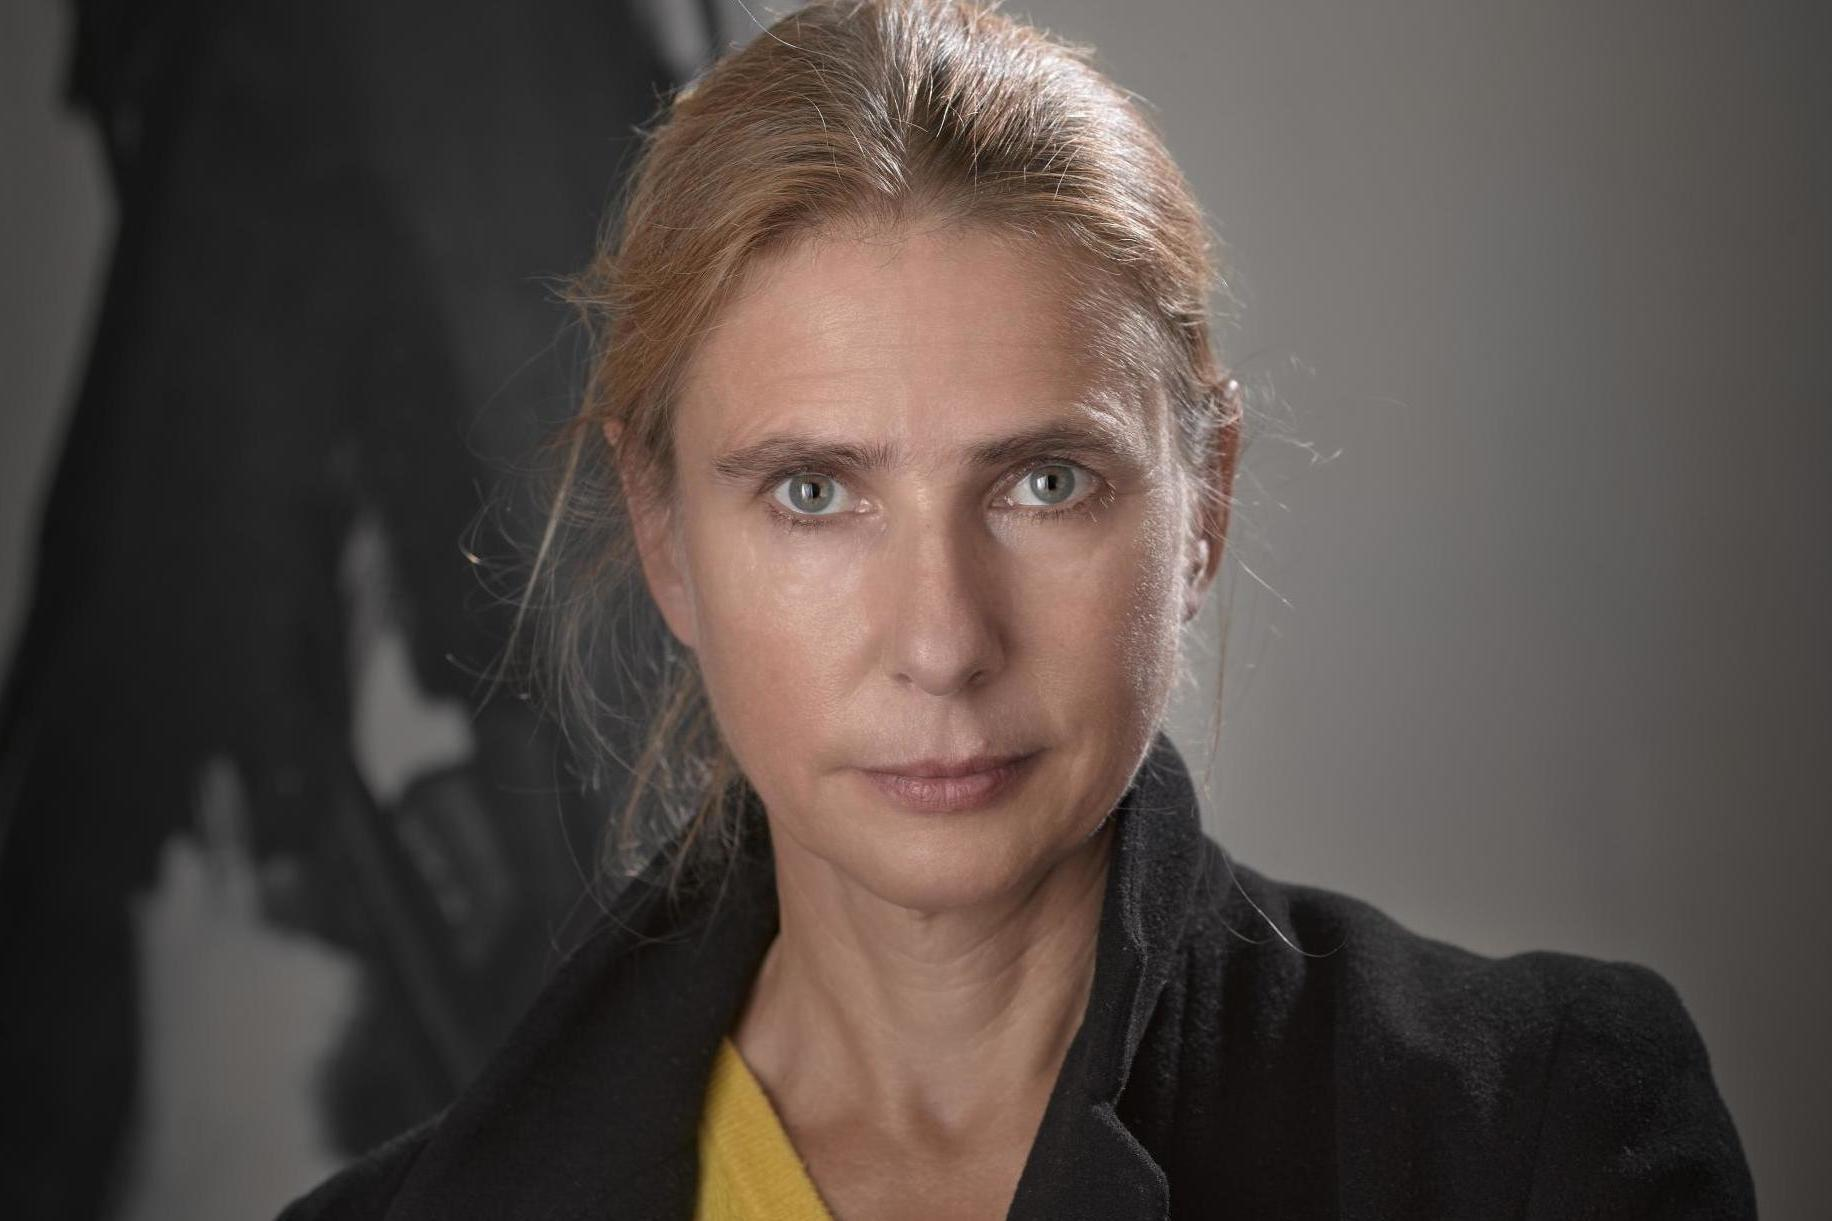 Lionel Shriver: 'Two-thirds of coronavirus fatalities would have probably died within the year anyway'